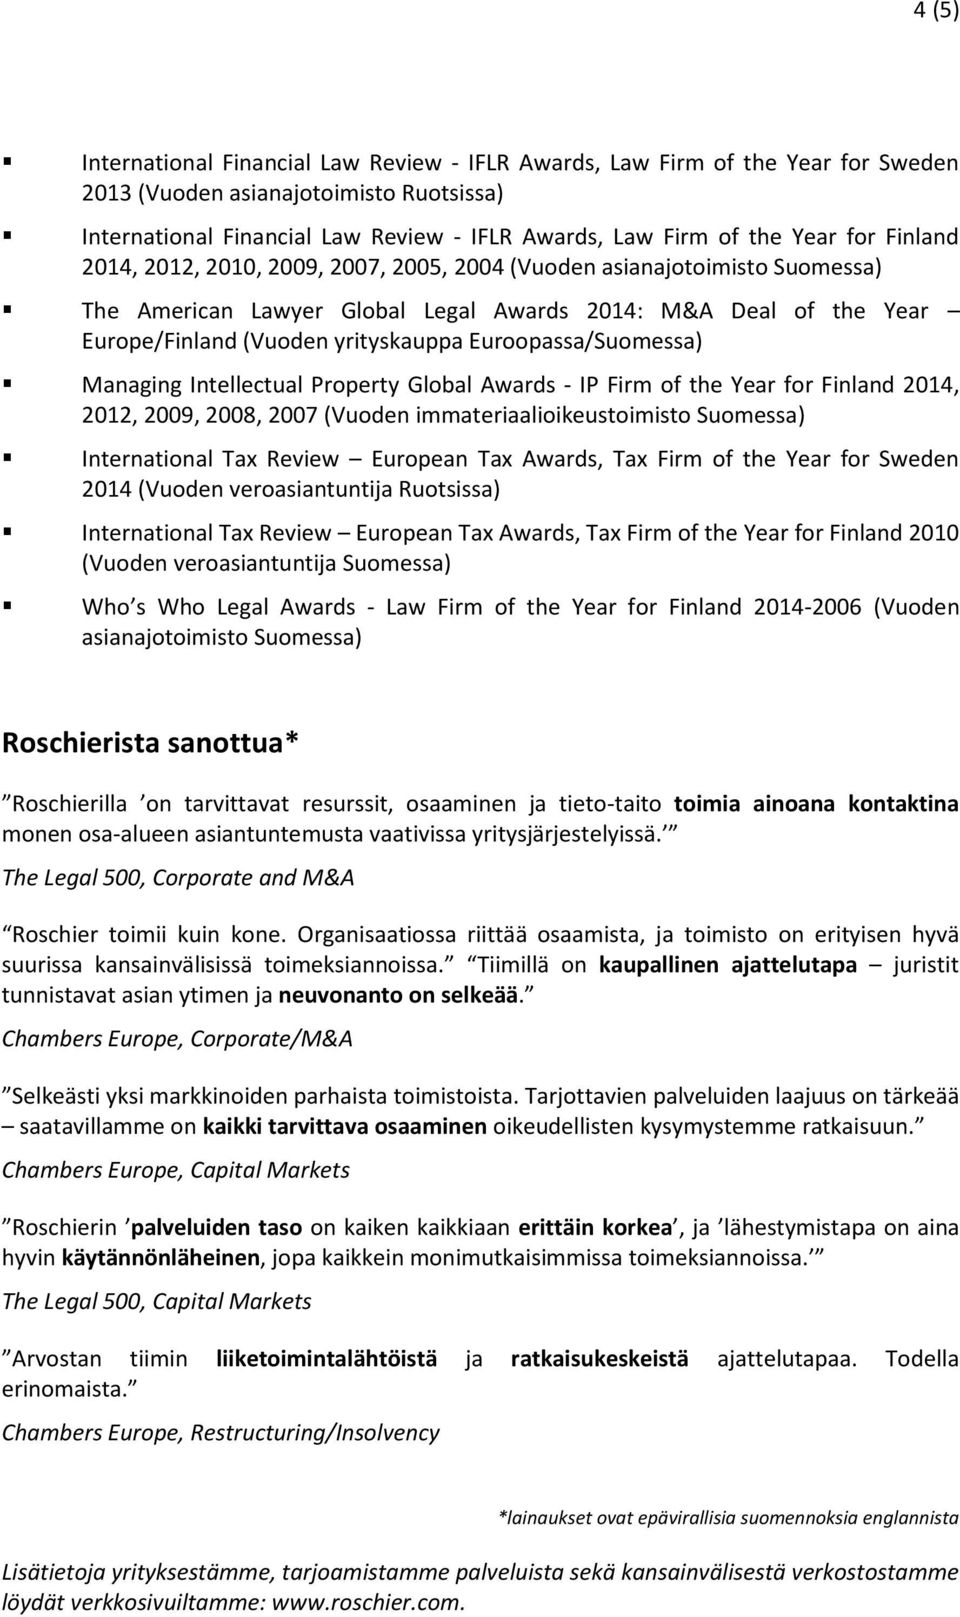 Euroopassa/Suomessa) Managing Intellectual Property Global Awards - IP Firm of the Year for Finland 2014, 2012, 2009, 2008, 2007 (Vuoden immateriaalioikeustoimisto Suomessa) International Tax Review